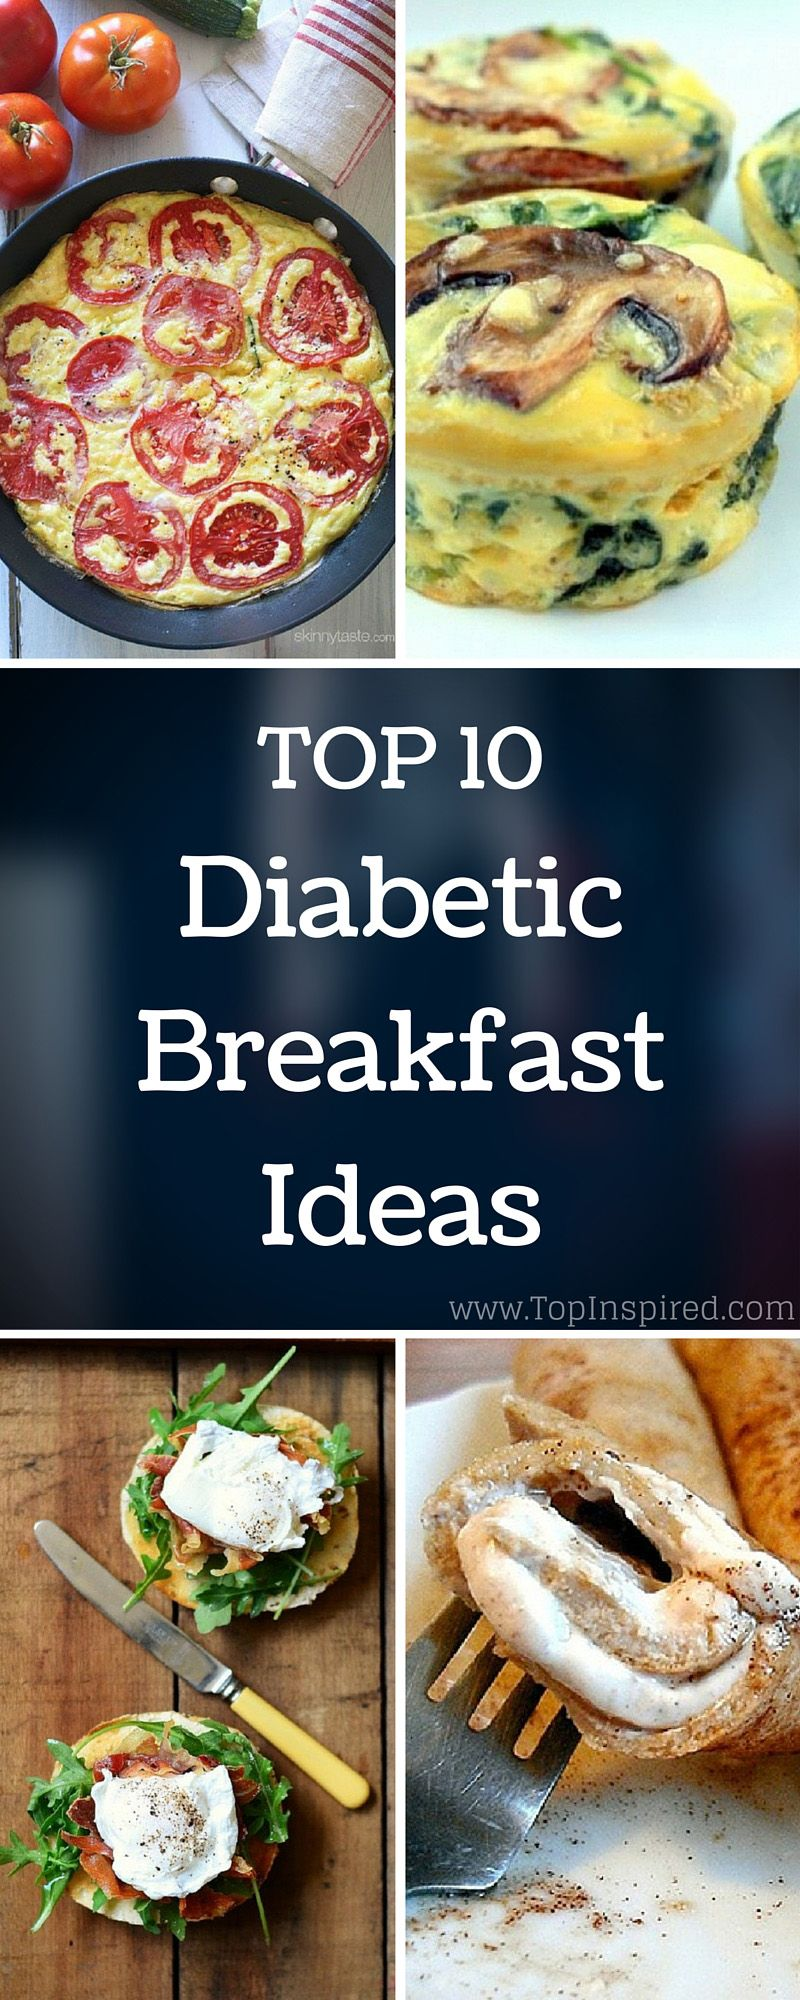 Top 10 diabetic breakfast ideas diabetic breakfast diabetes and best diabetic breakfast ideas diabetic forumfinder Gallery